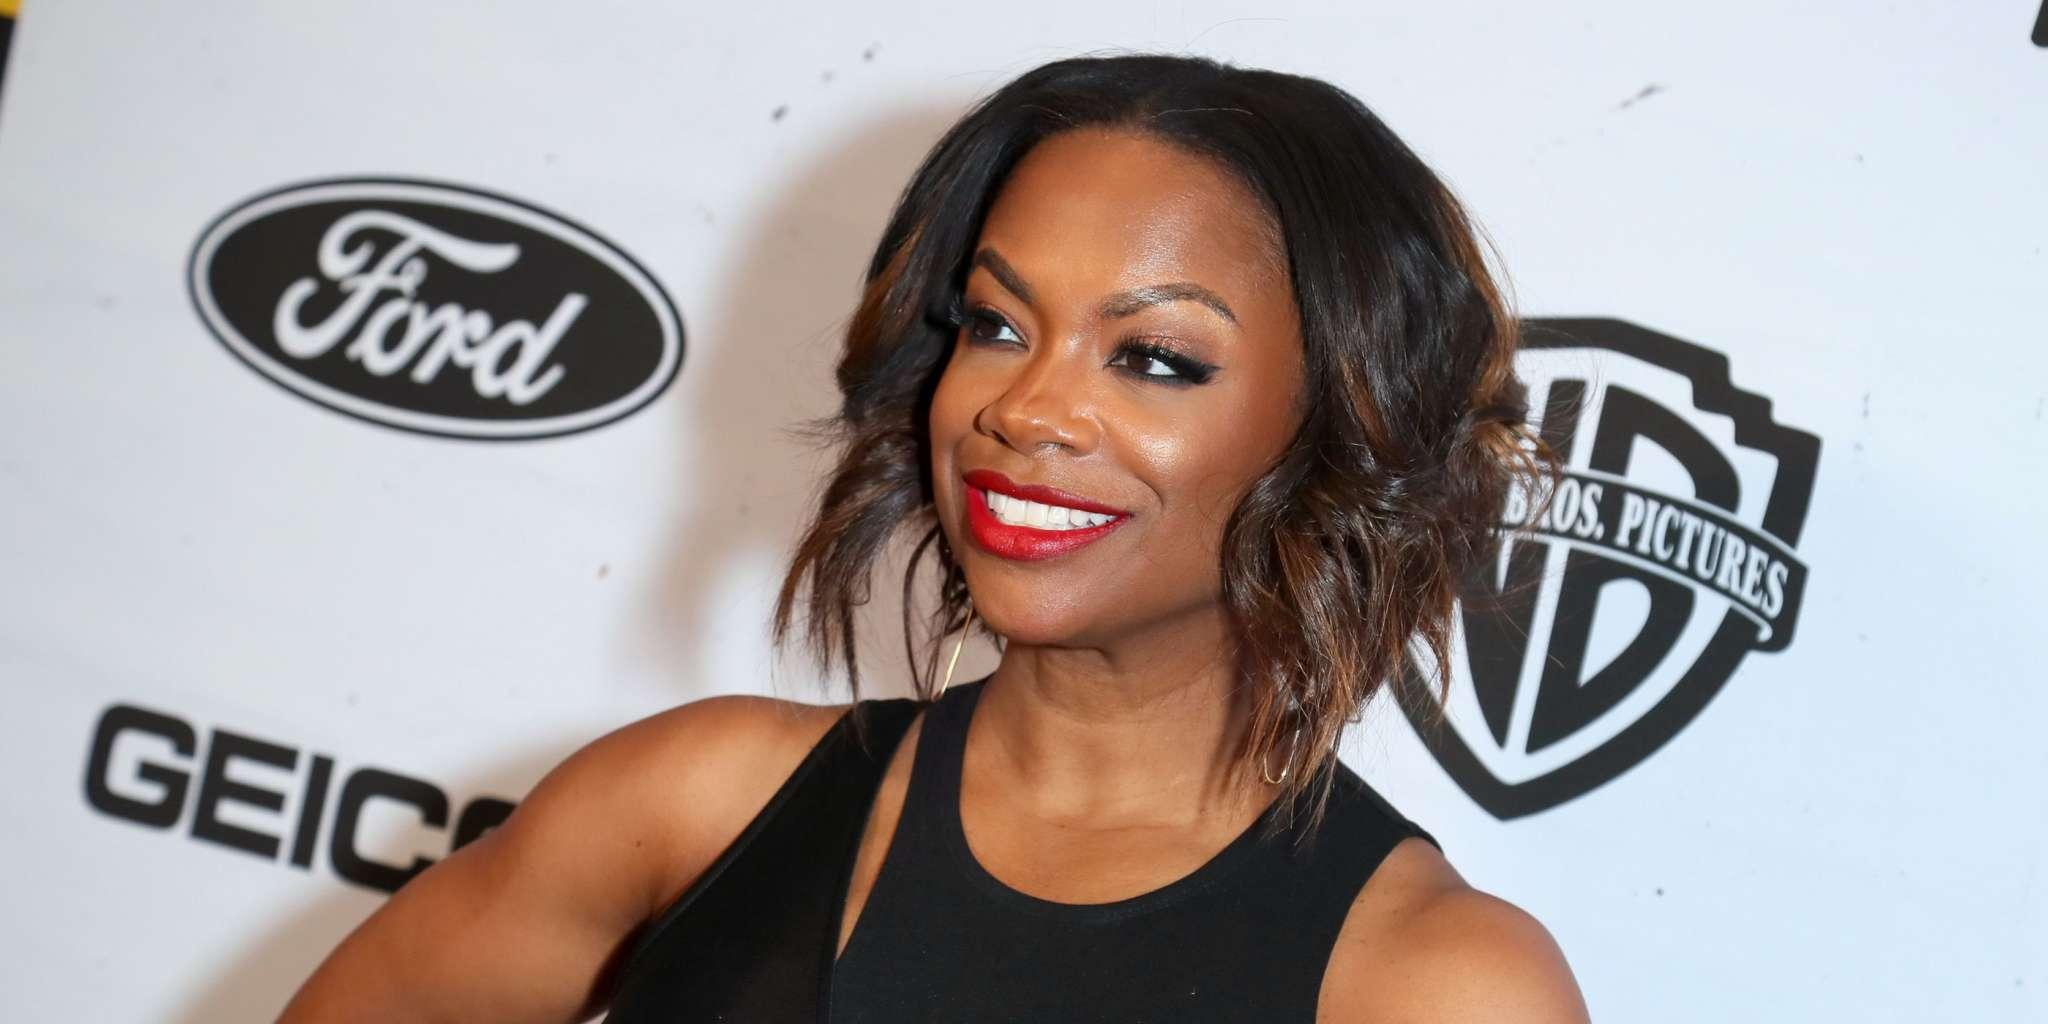 Kandi Burruss' Extra Pounds Are Going To The Right Places - See Her Jaw-Dropping Curves In This Red Dress!